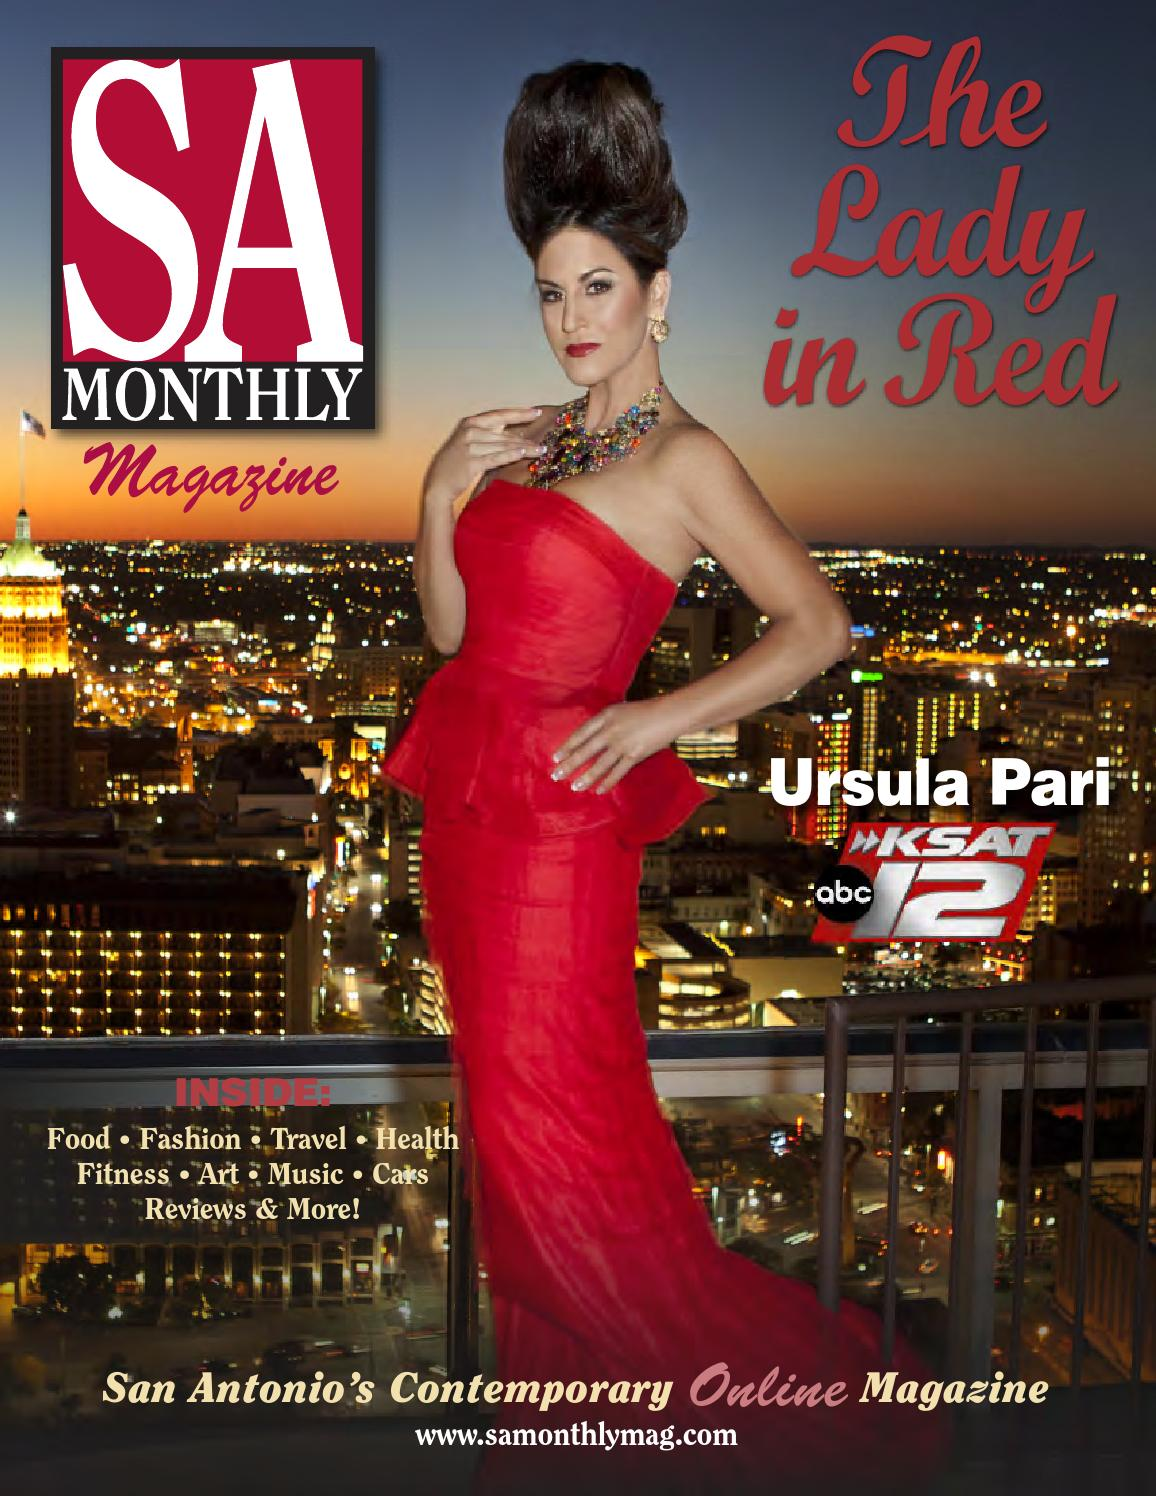 a98fd6ebfc6 SA Monthly Magazine by SA Monthly Magazine - issuu